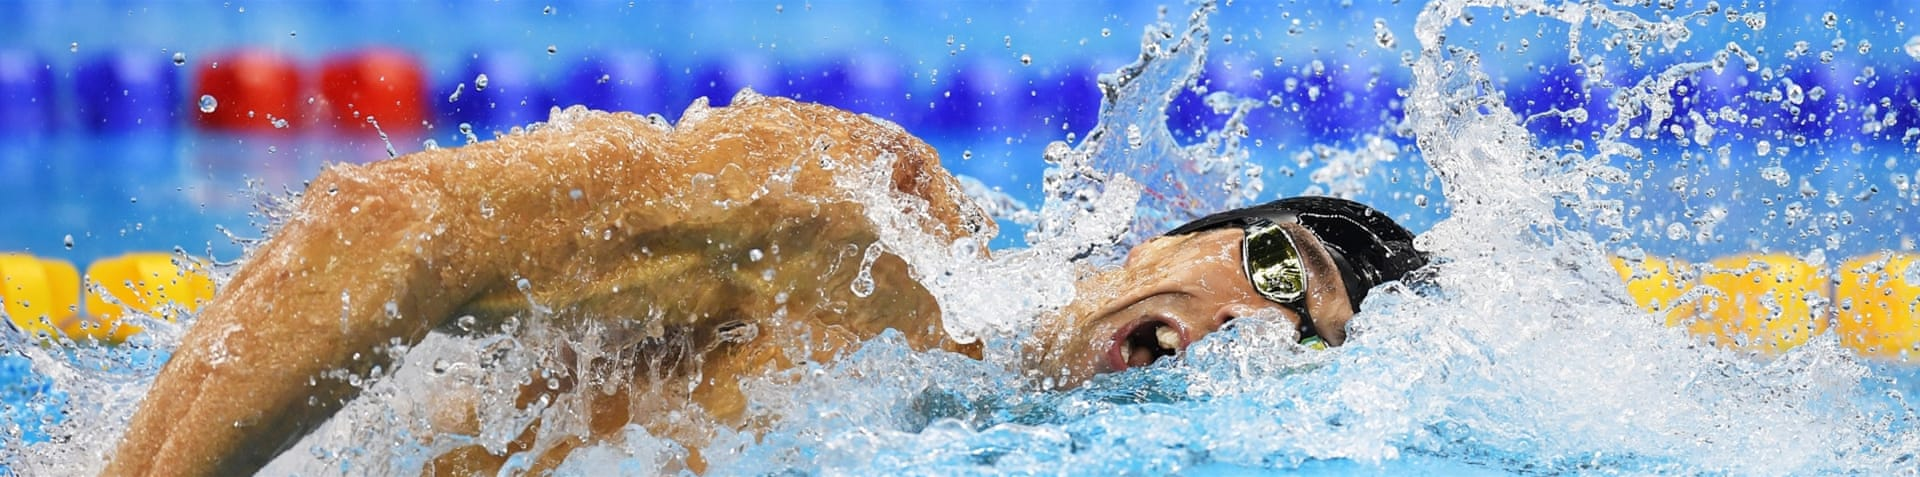 Phelps won his 21st career gold in the 4x200 metre freestyle relay [Reuters]